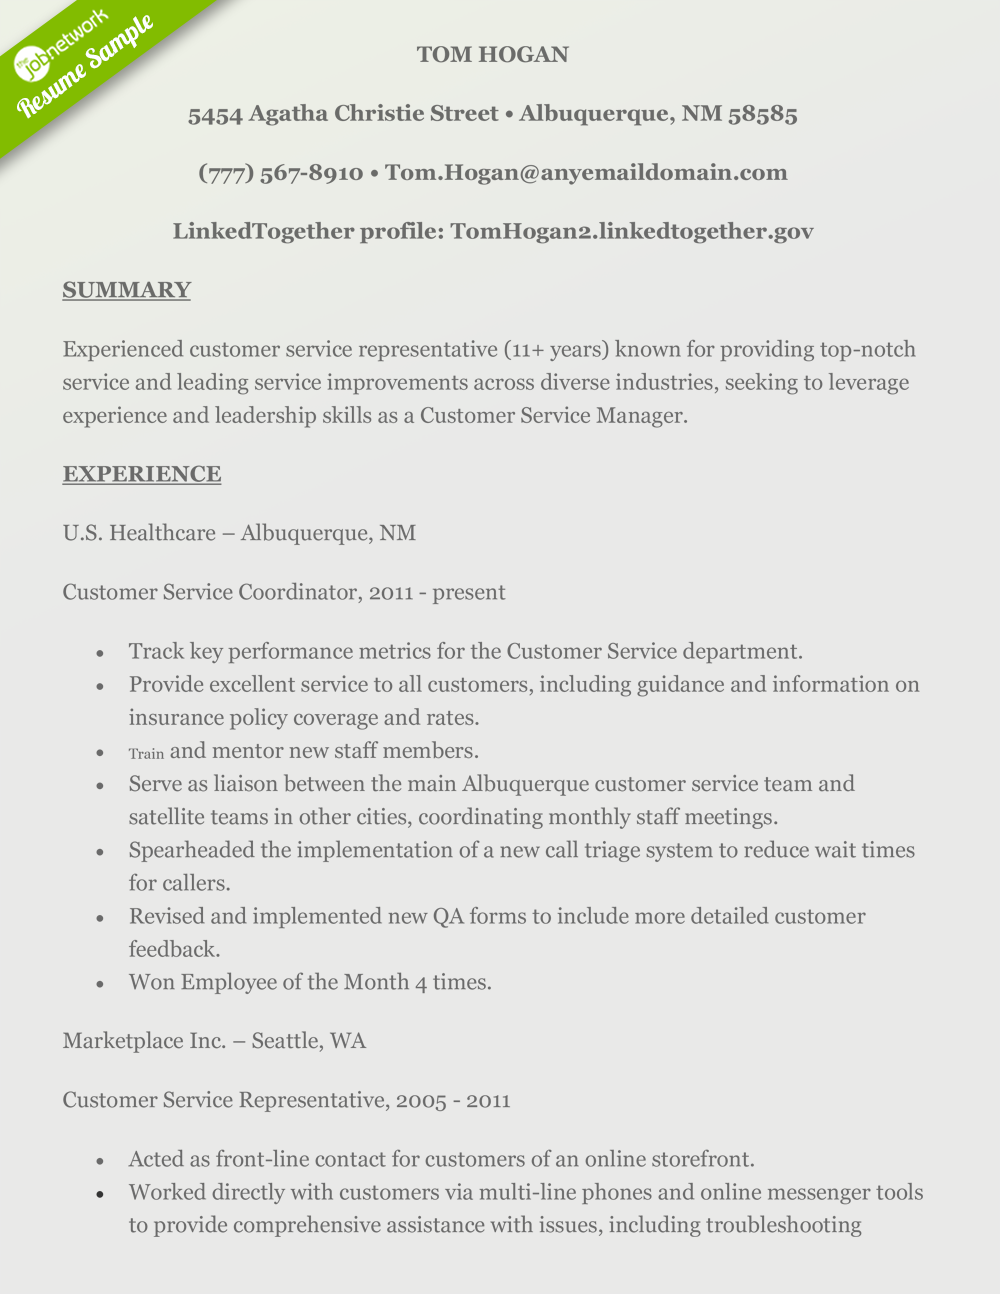 Tom Hogan Resume  Resume Example Customer Service